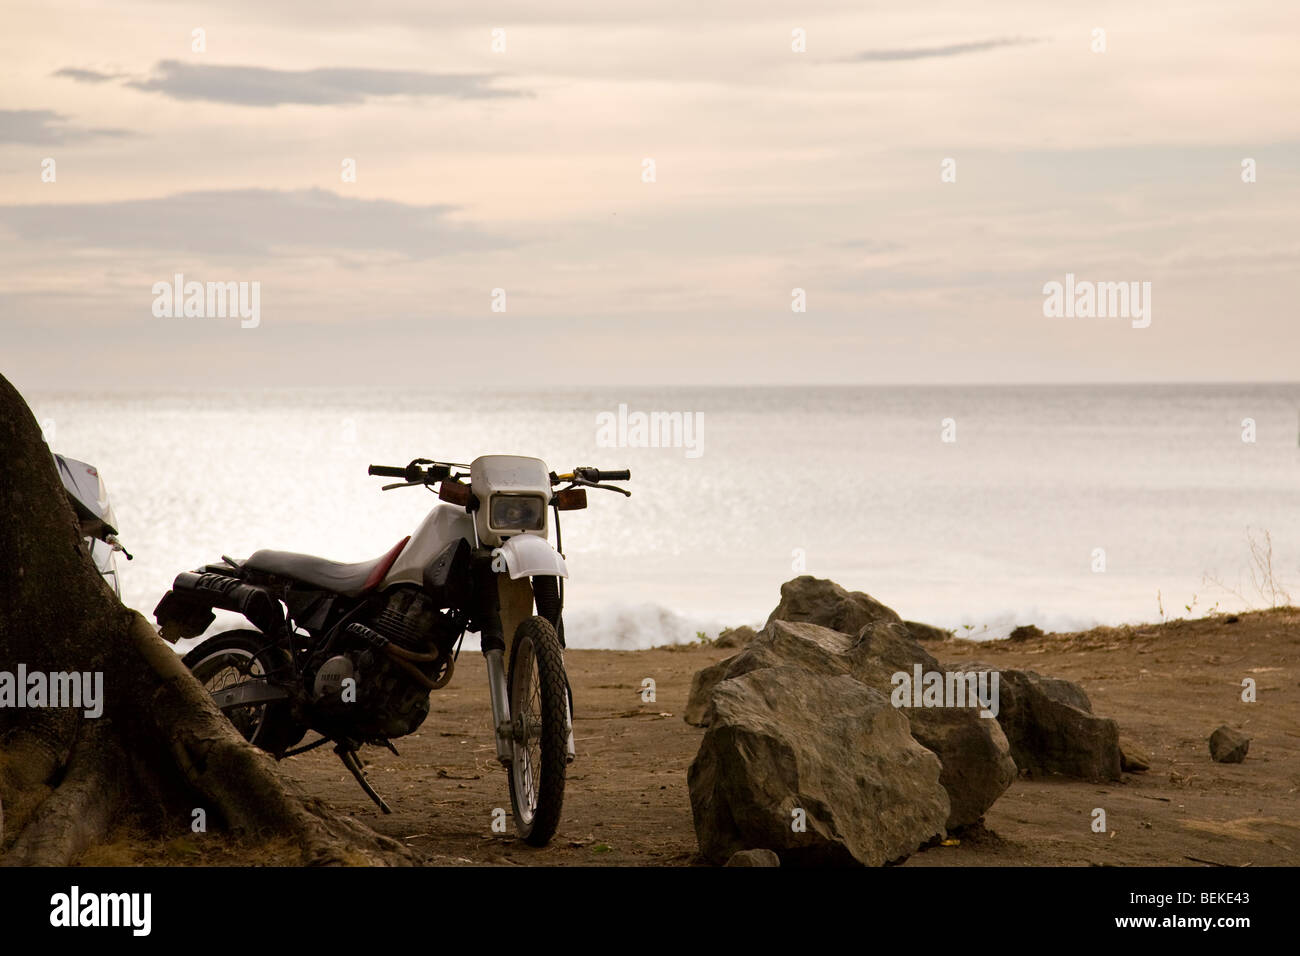 Dirt bike sitting on the beach in Playa del Coco, Guanacaste Province, Costa Rica. - Stock Image